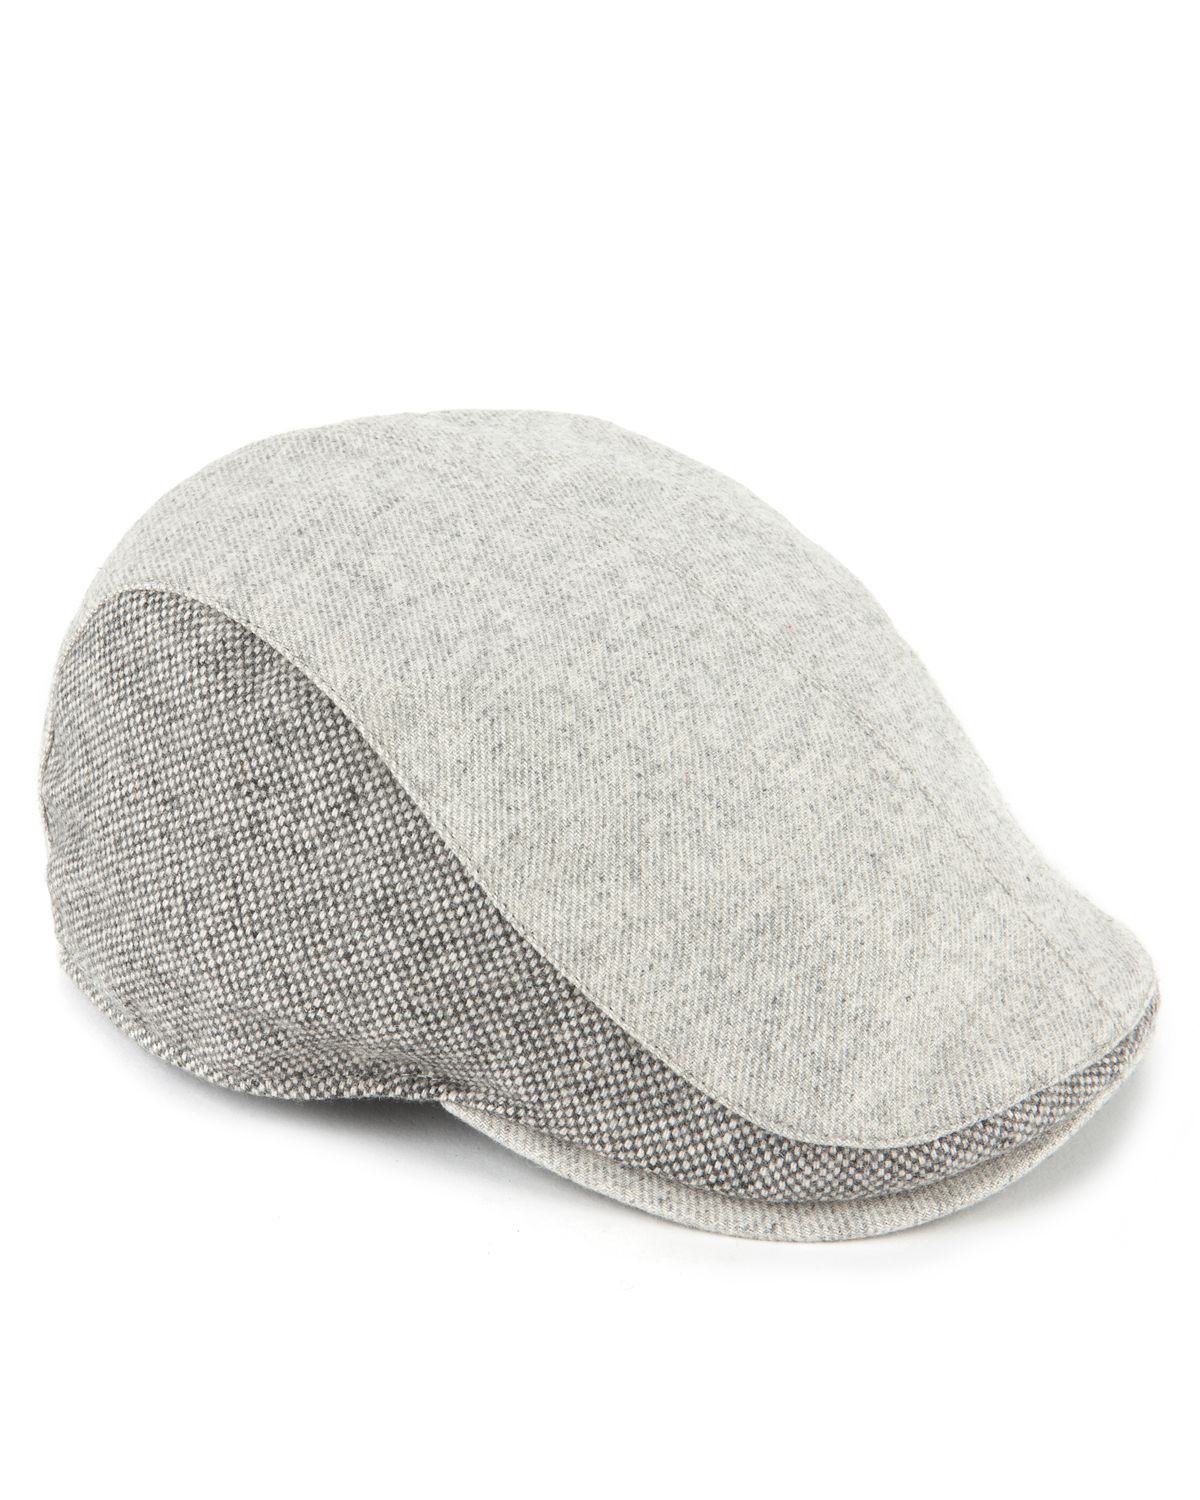 Lyst - Ted Baker Crebag Contrast Flat Cap in Gray for Men 96c8a84a85a65